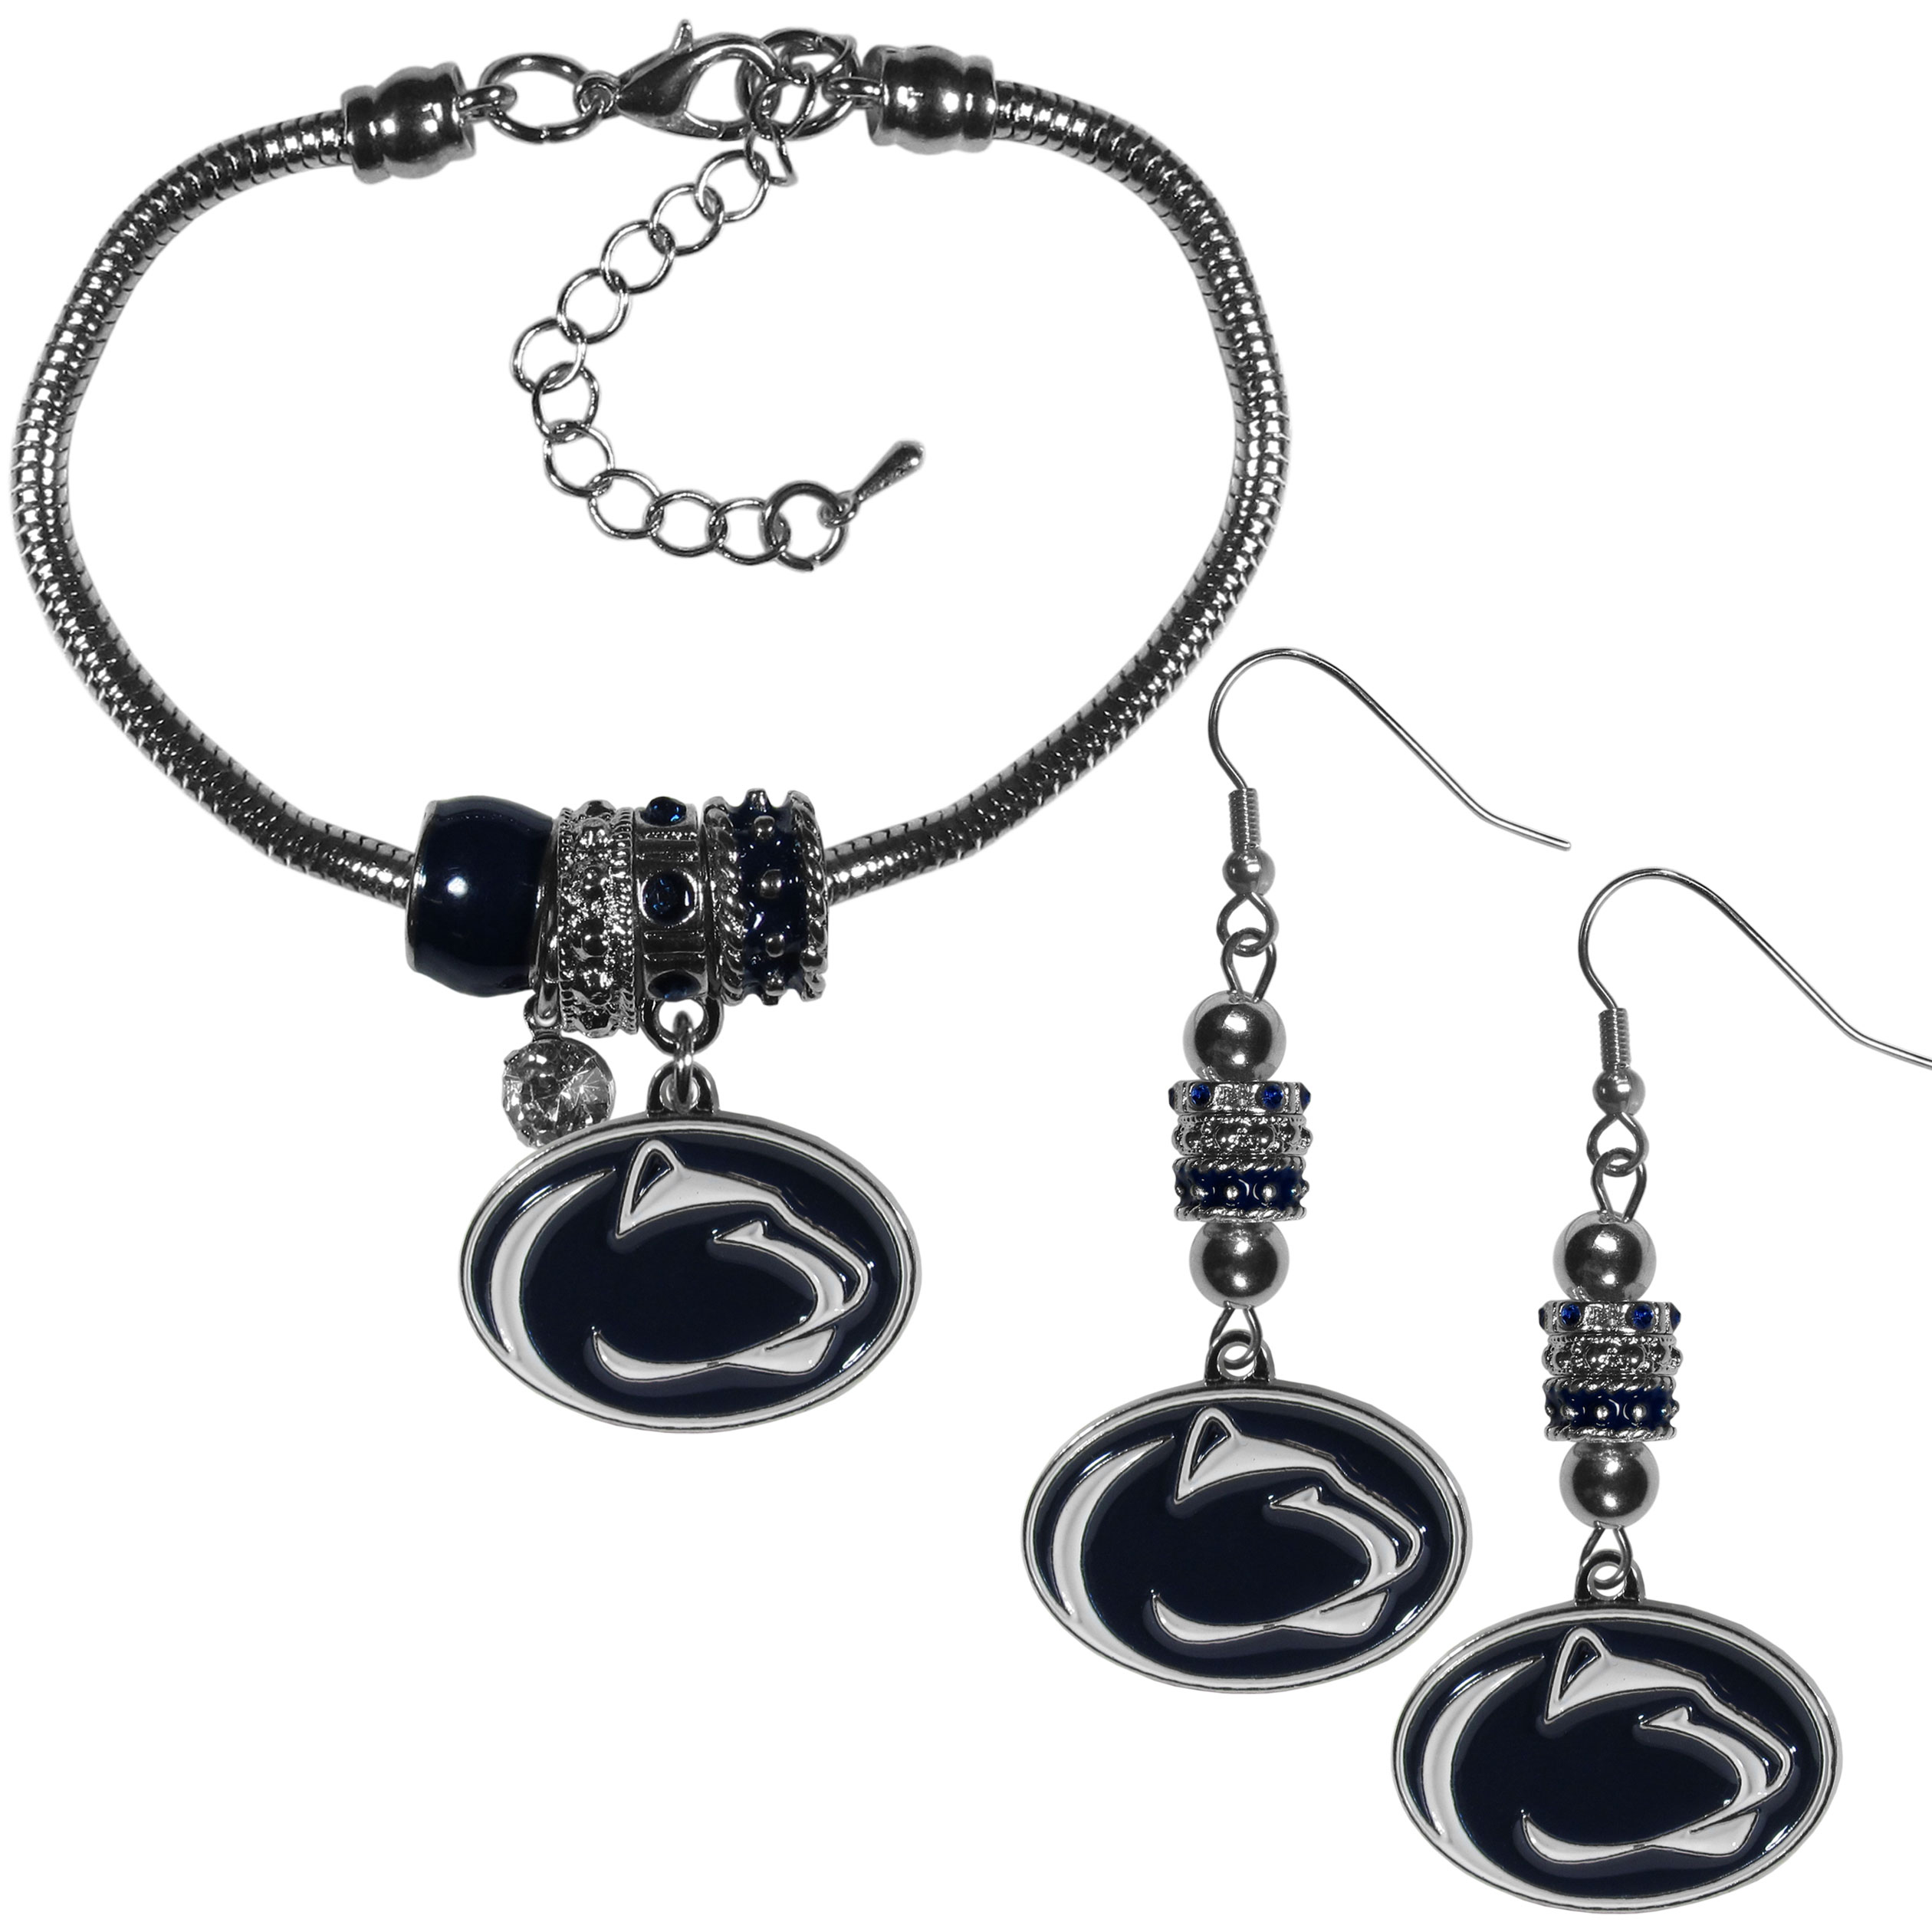 Penn St. Nittany Lions Euro Bead Earrings and Bracelet Set - We combine the popular Euro bead style with your love of the Penn St. Nittany Lions with this beautiful jewelry set that includes earrings and a matching bracelet. The stylish earrings feature hypoallergenic, nickel free fishhook posts and 3 team colored Euro beads and a metal team charm. The matching snake chain bracelet is 7.5 inches long with a 2 inch extender and 4 Euro beads with a rhinestone charm and team charm.